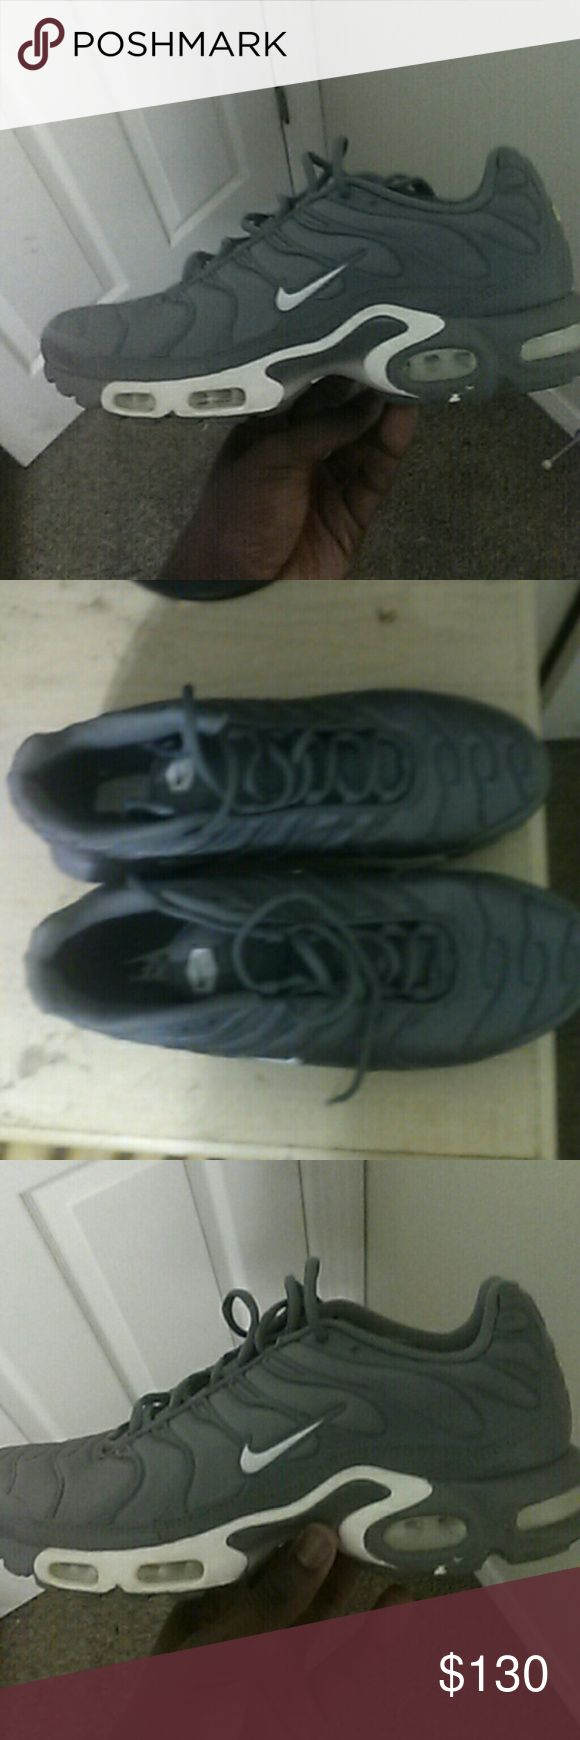 Nike Air Max Plus Only worn once honestly no lie Nike Shoes Sneakers